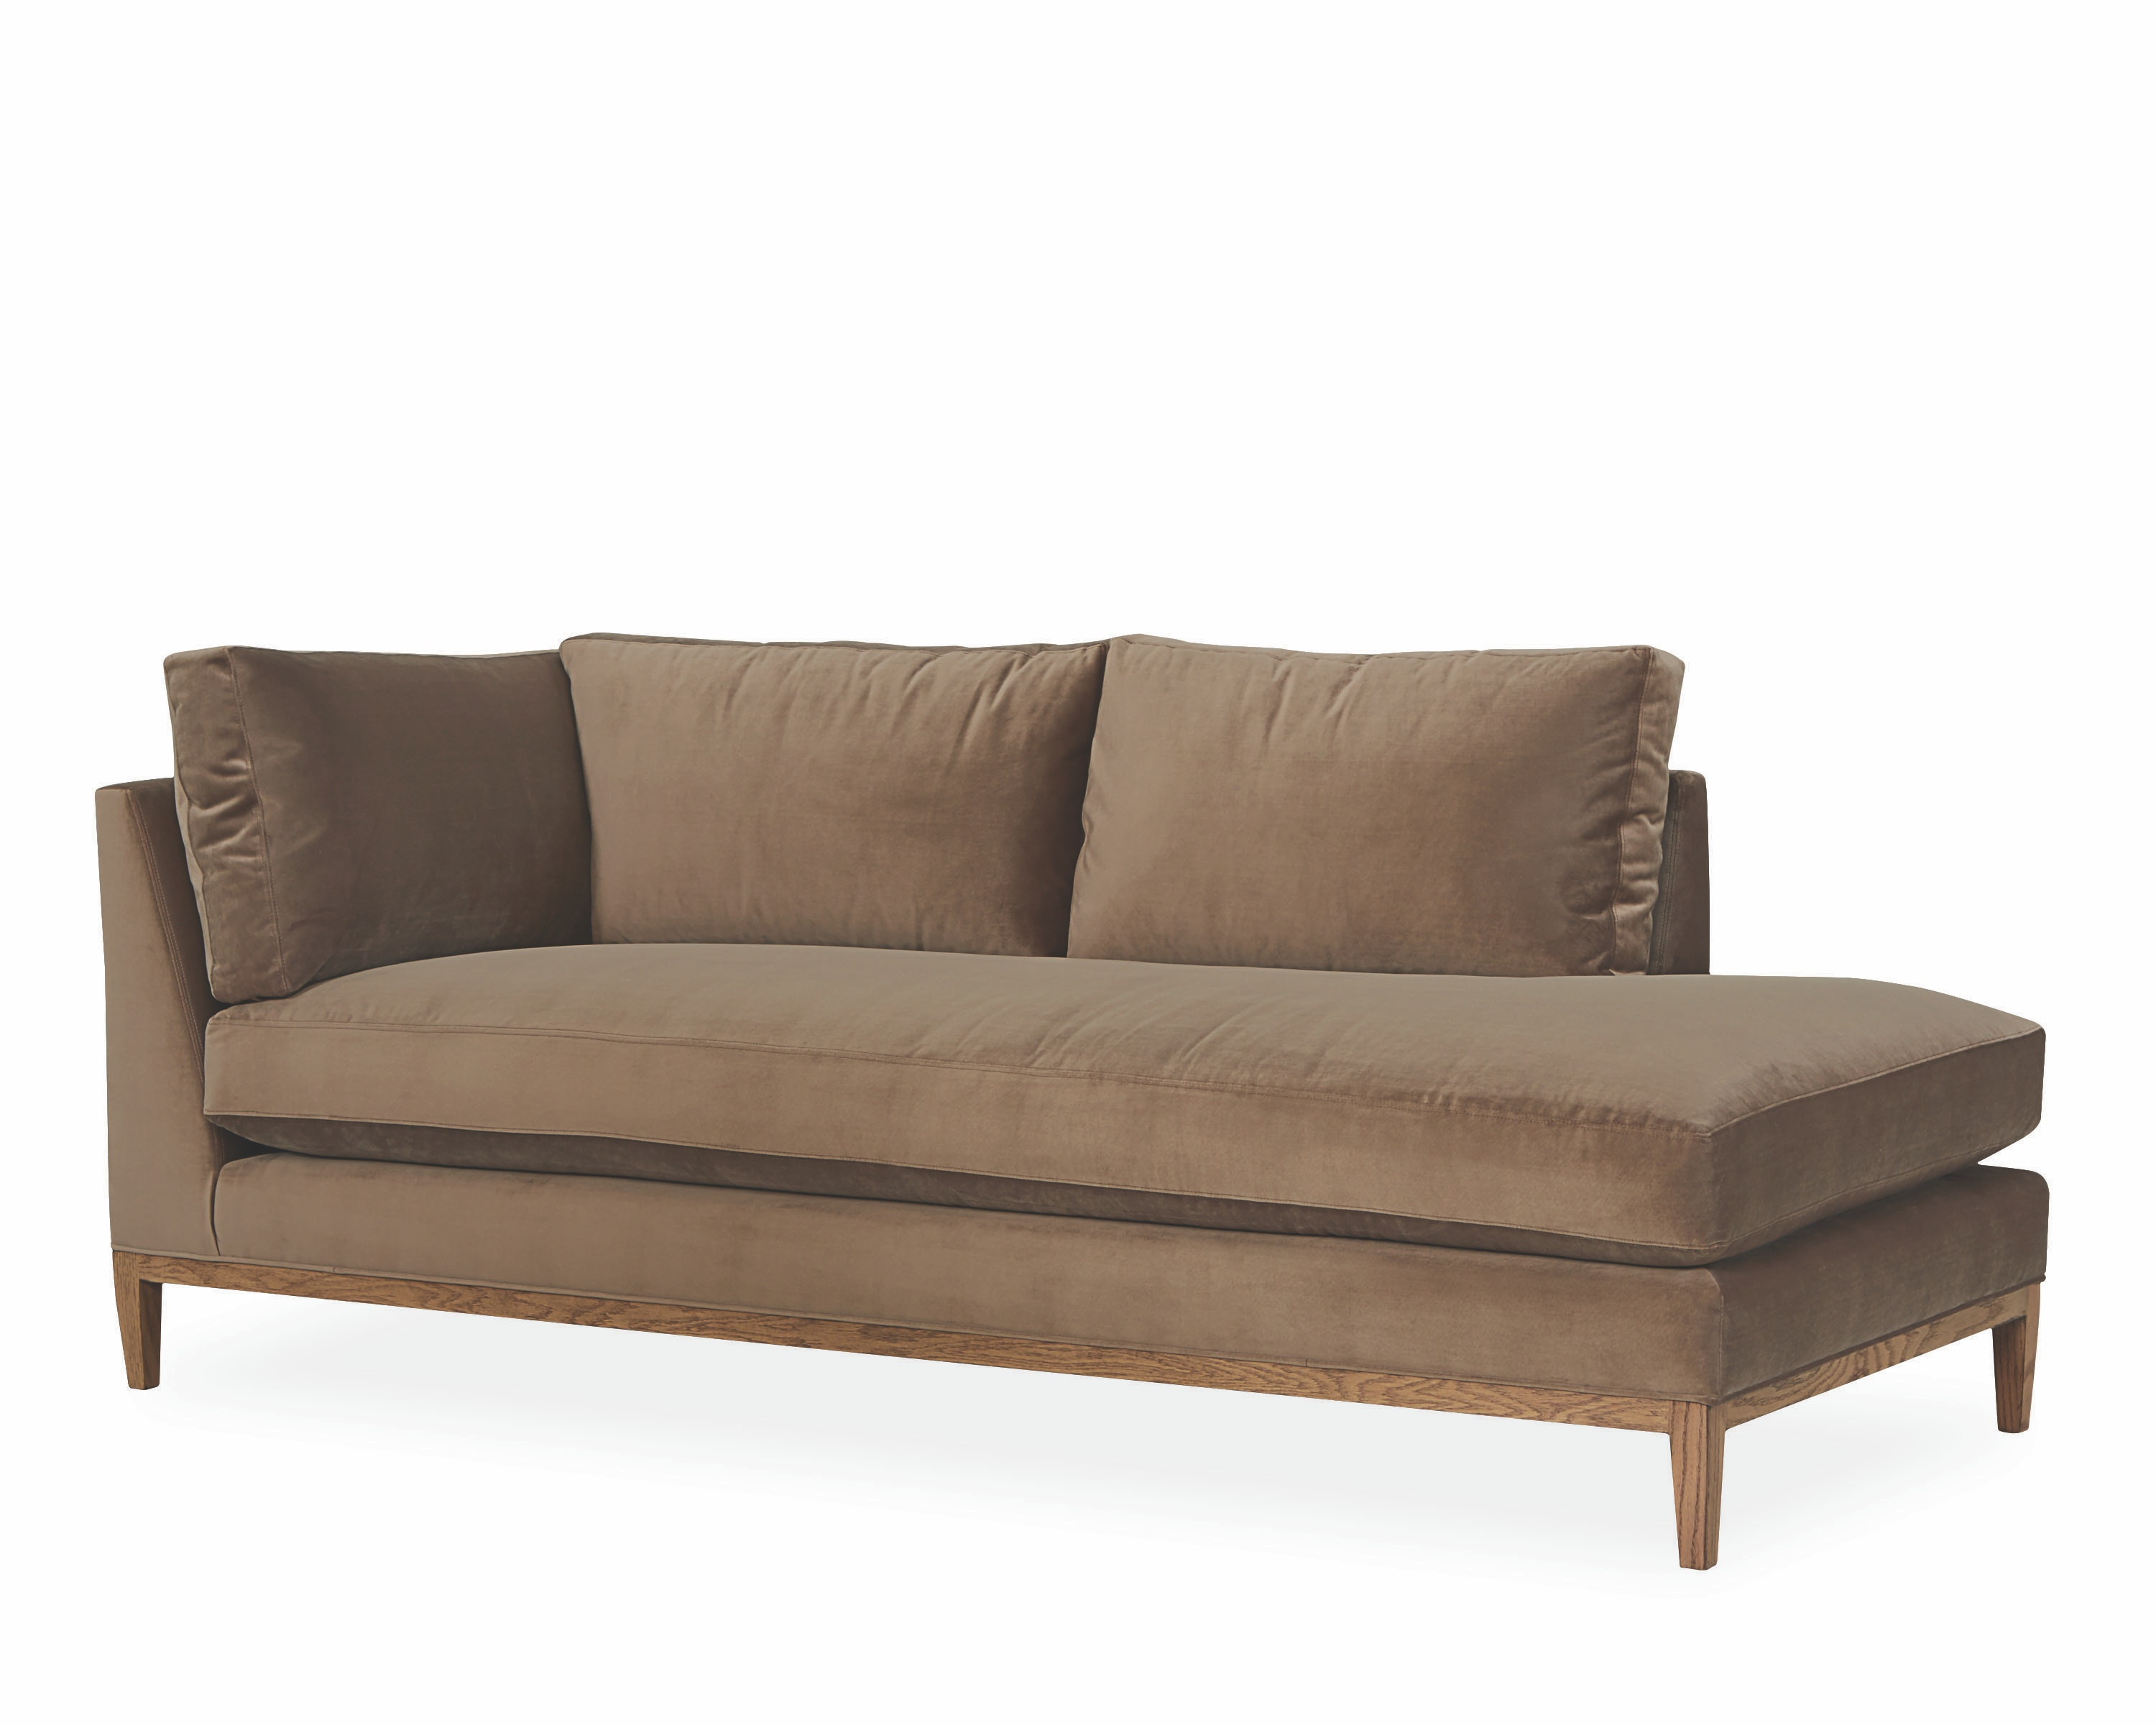 Lee Industries Bumper Chaise 3583-83RF  sc 1 st  Toms-Price : lee industries sectional price - Sectionals, Sofas & Couches